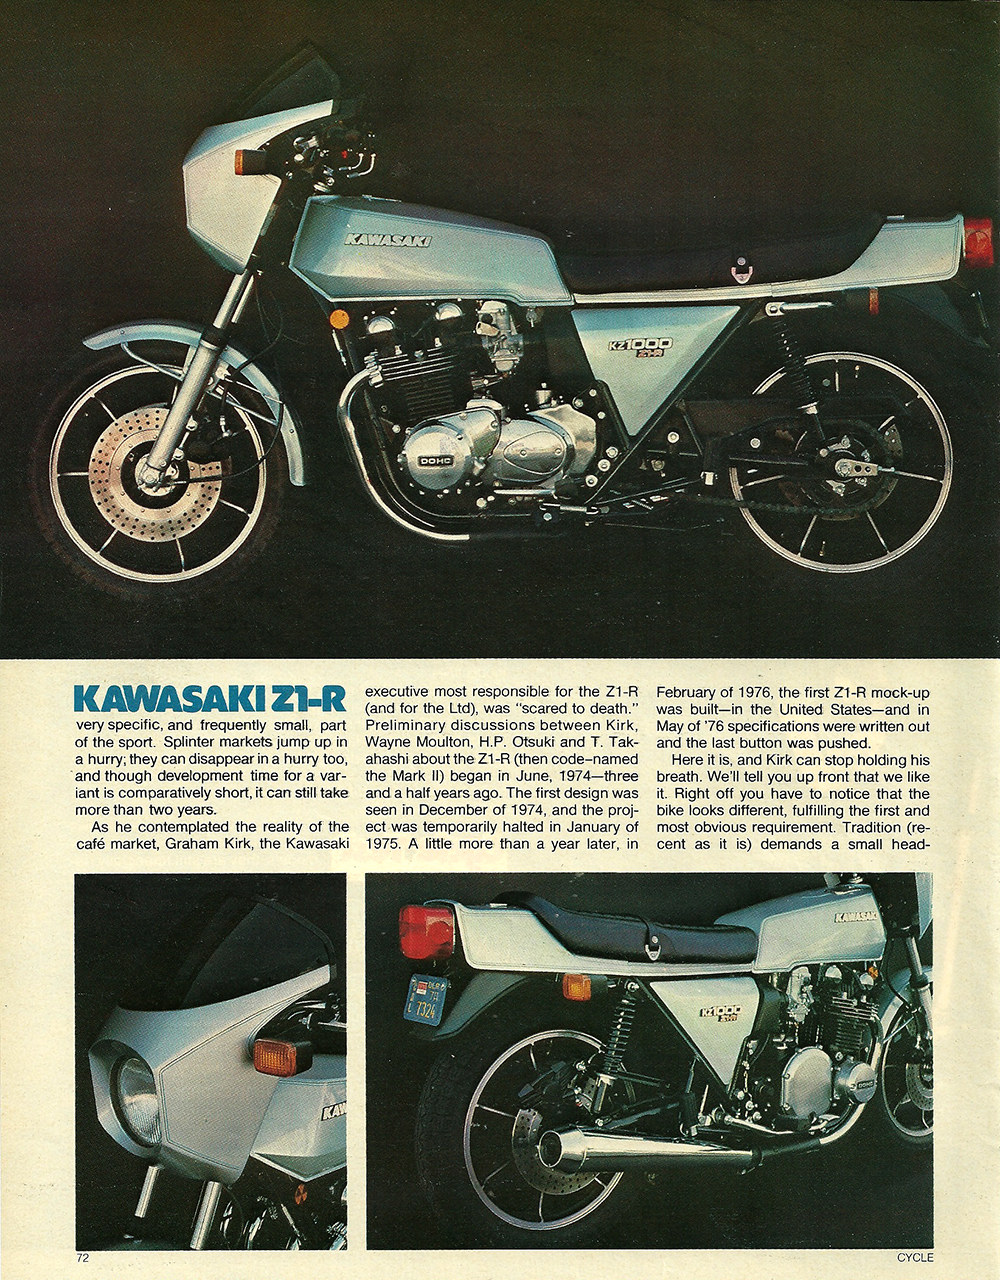 1977 Kawasaki Z1R road test 03.jpg